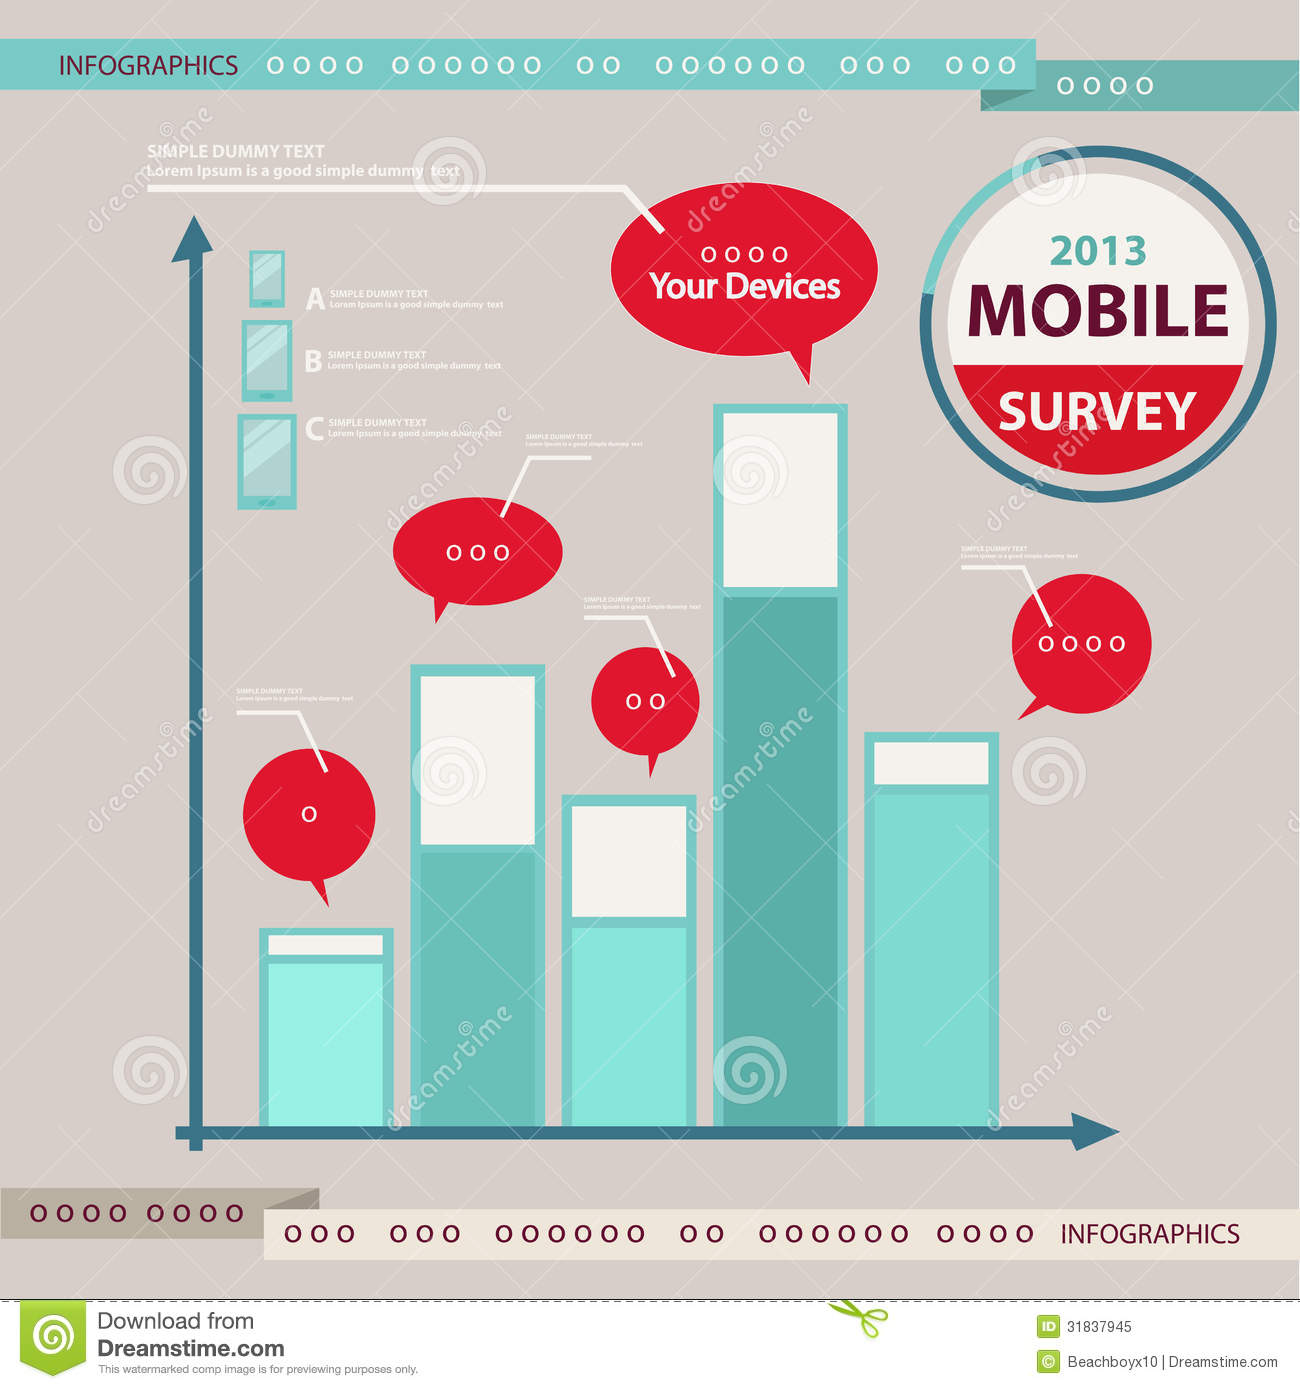 infographic elements mobile phone devices royalty free stock photo